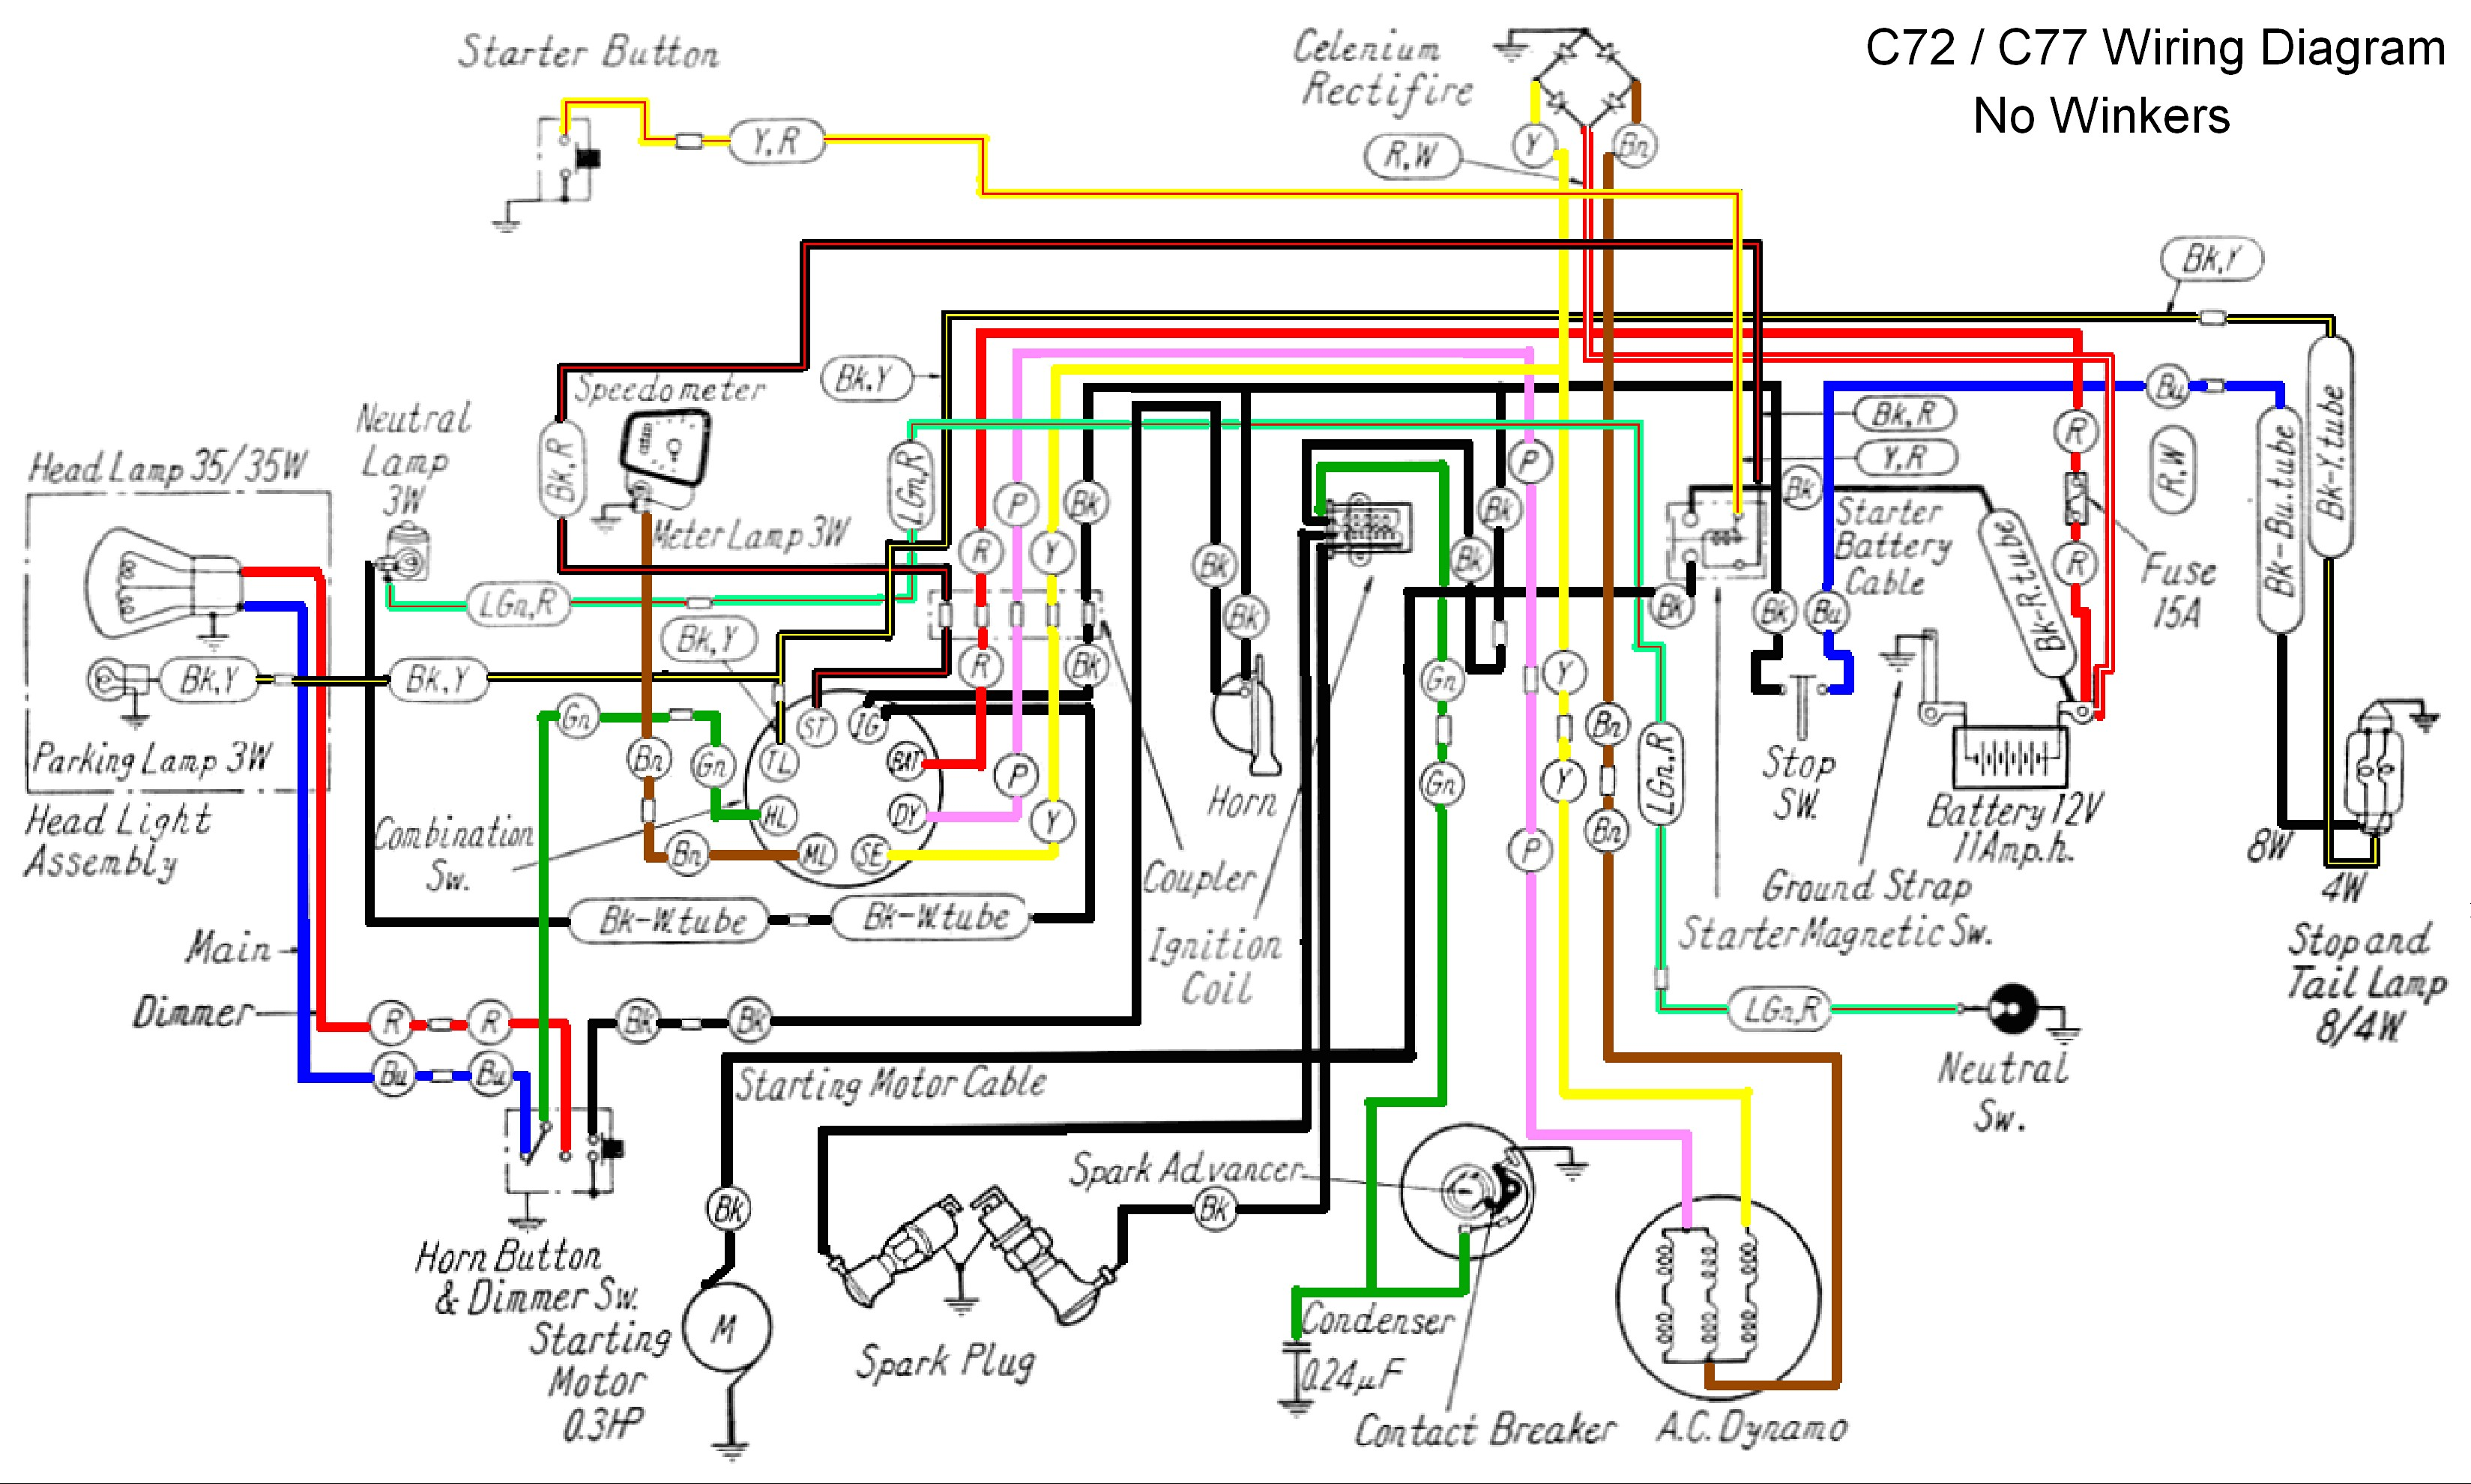 cafe cb550 wiring diagram residential electrical symbols \u2022 honda cb 900 wiring diagram cb750 cafe wiring diagram get free image about wiring diagram wire rh theiquest co honda cb750 wiring schematic 1975 honda cb750 wiring schematics